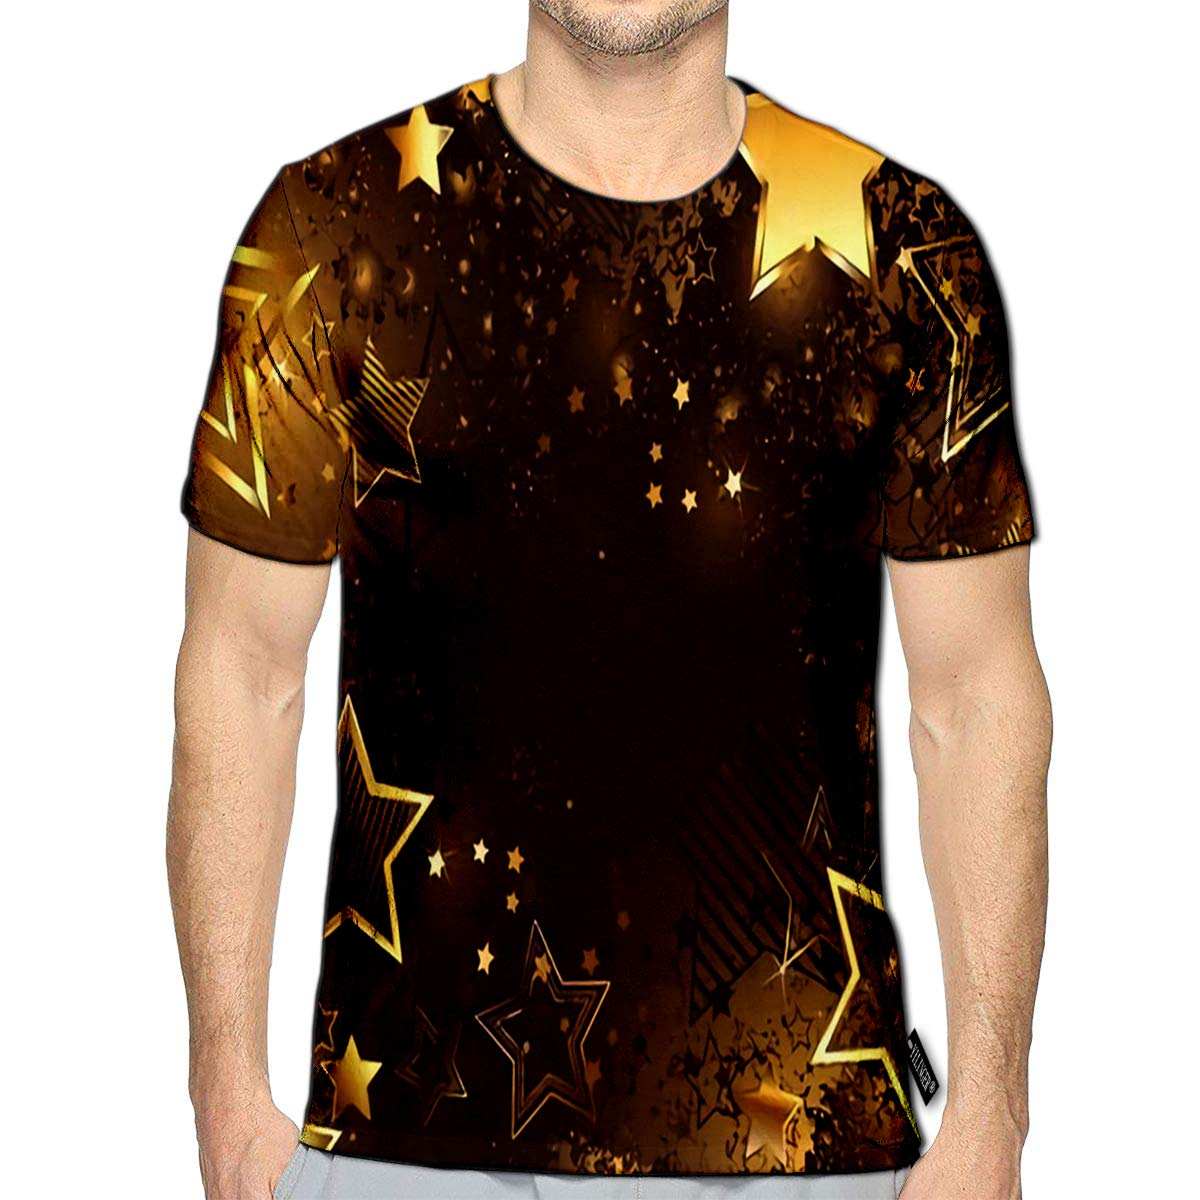 T-Shirt 3D Printed Abstract Floral with Tulips and Geometric Elements Casual Tees